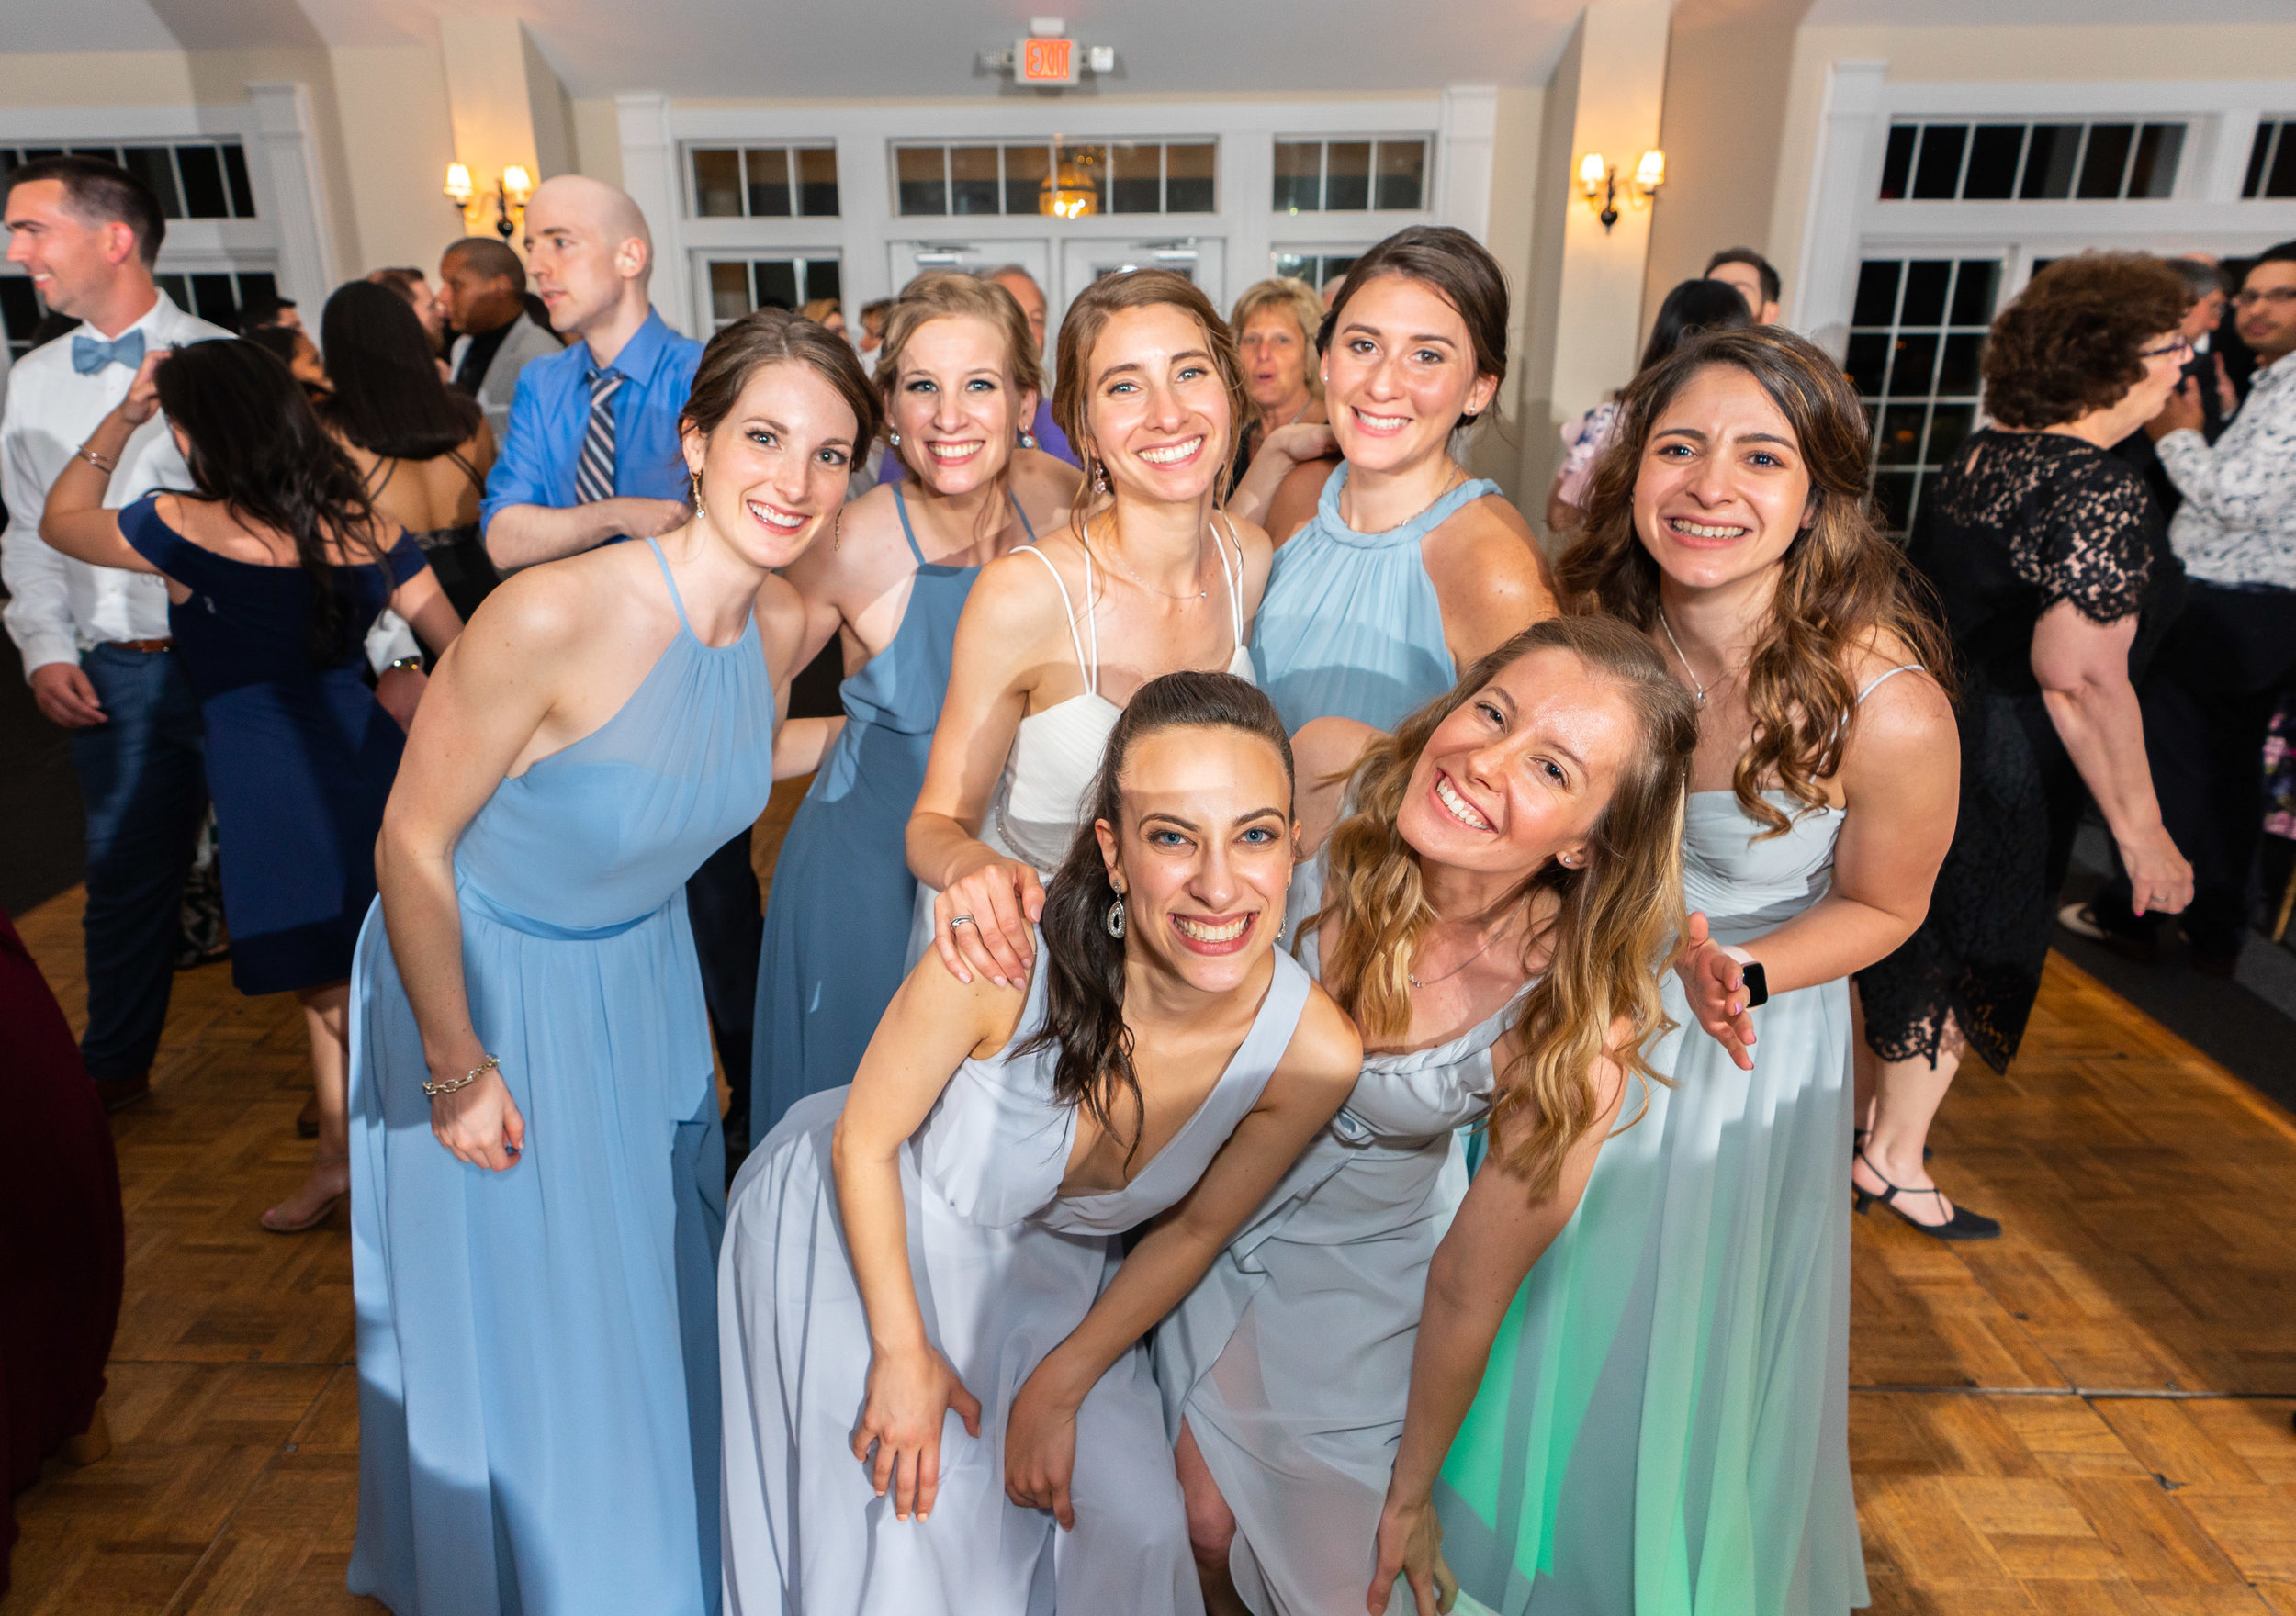 Bride and her bridesmaid squad on the dance floor